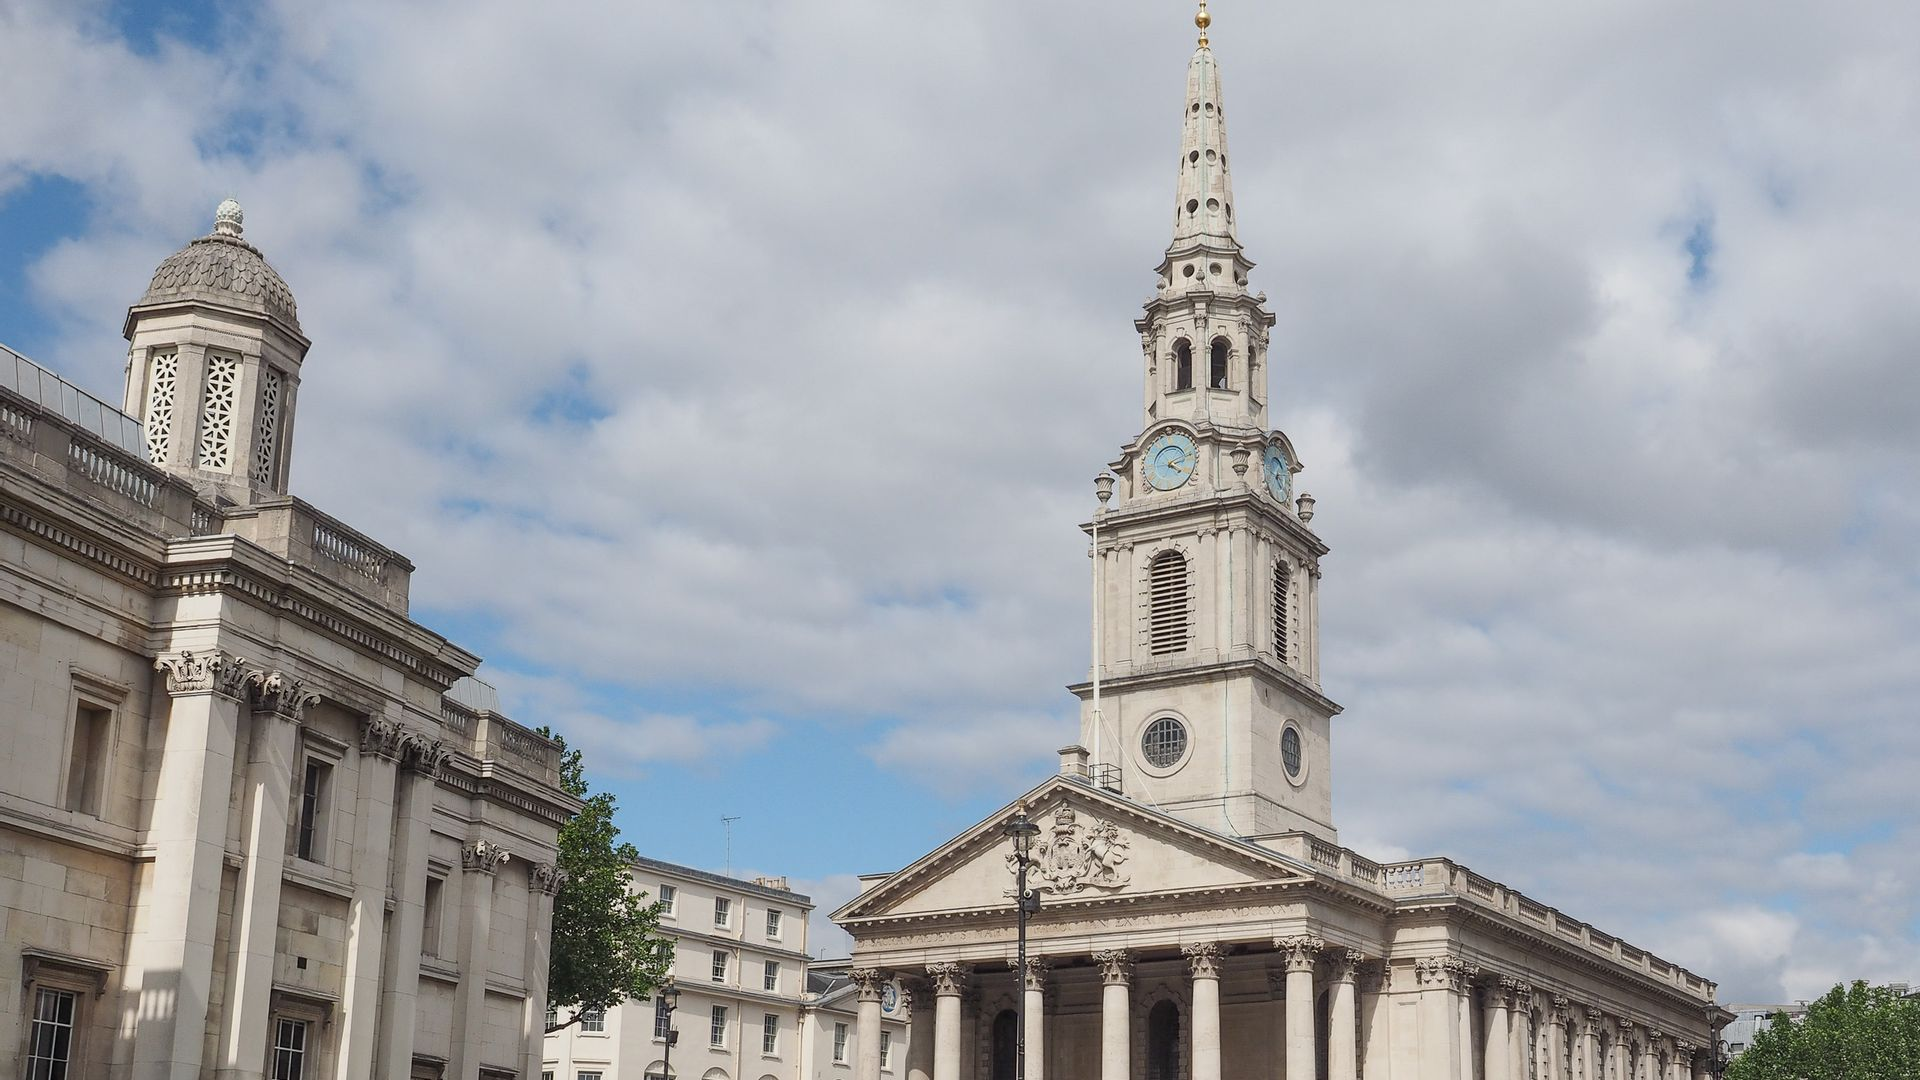 L'église St Martin-in-the-Fields, Londres - Angleterre ©iStock